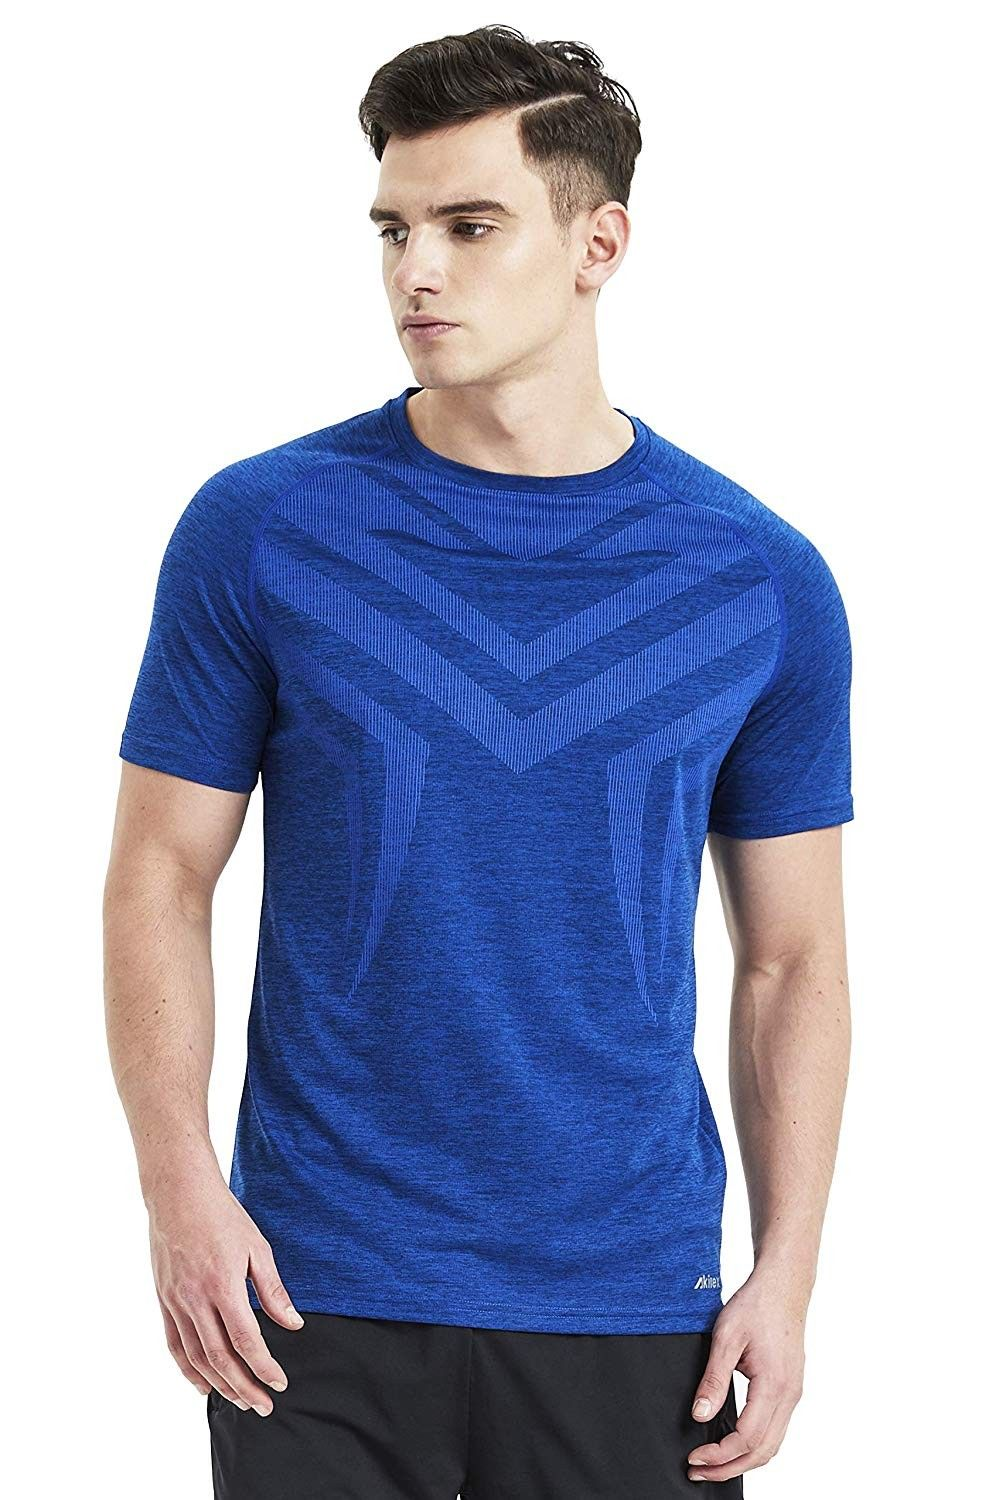 Men's Tight Sports Short Sleeve Comfortable Quick Dry